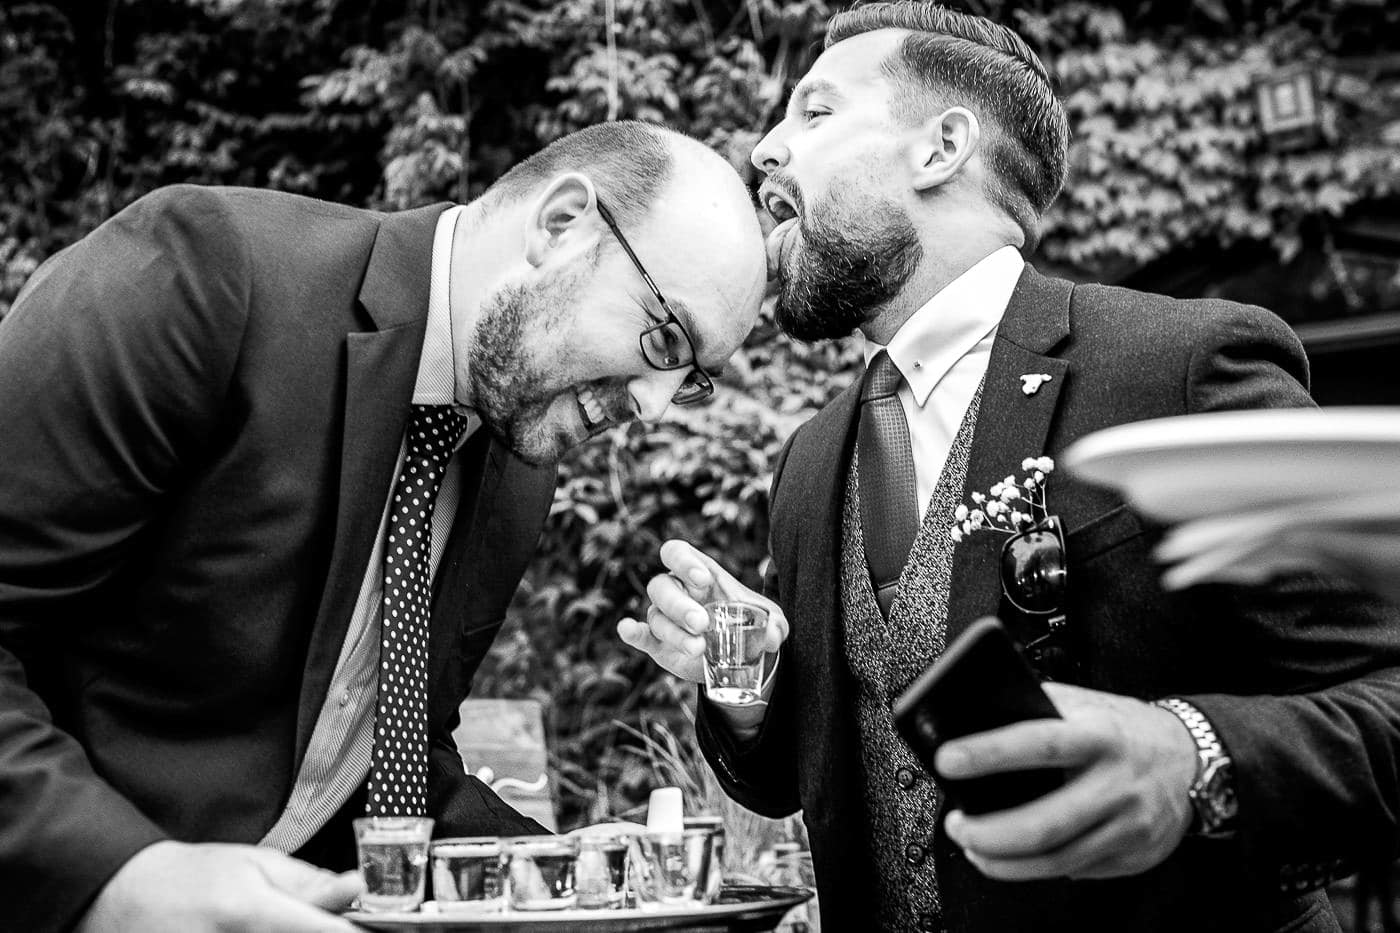 licking Tequila shots of the head, Maunsel House wedding photographer